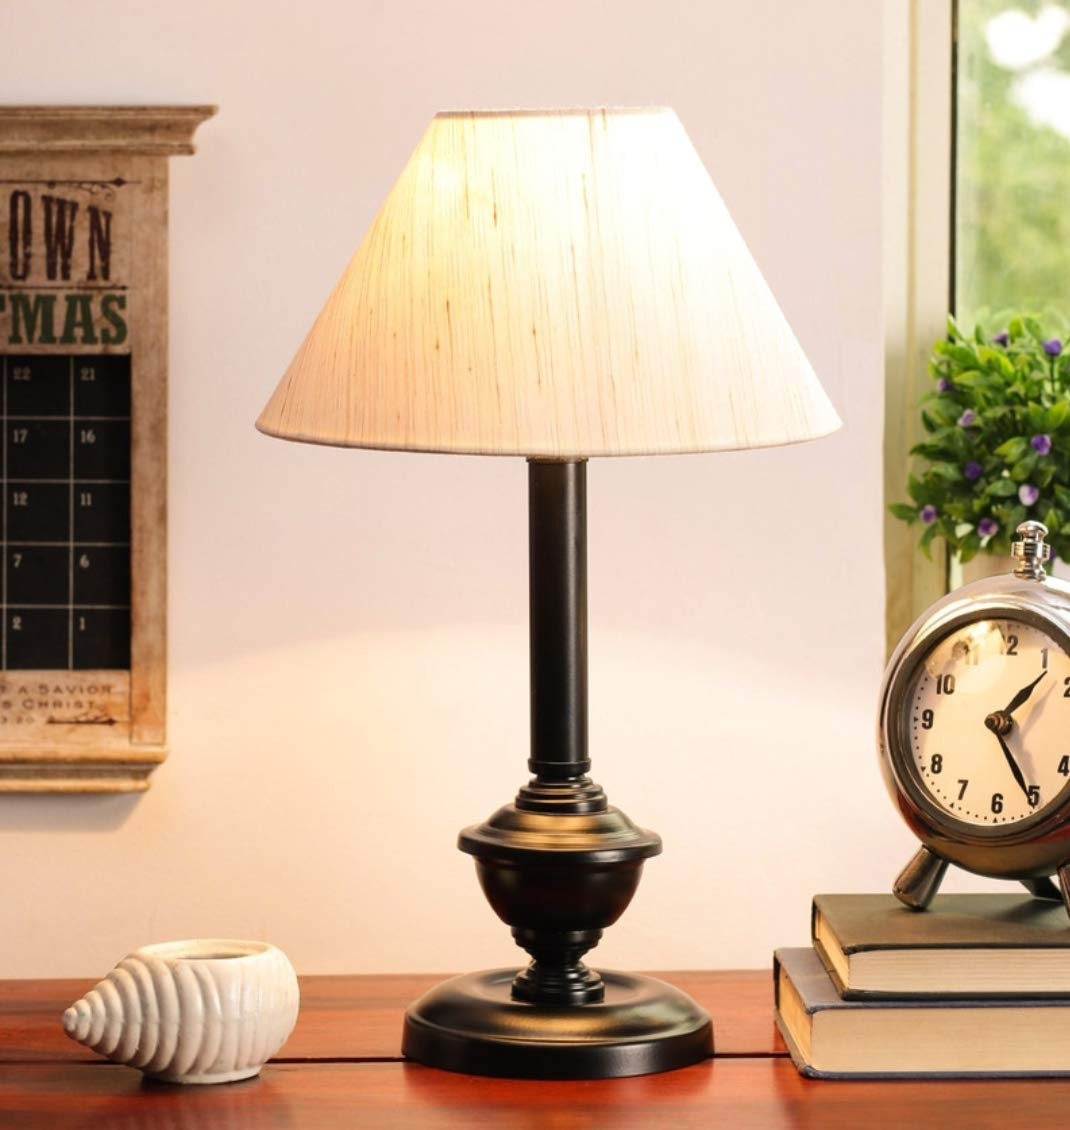 tu casa Ntu-83 Off White Cotton Shade Table lamp with Metal Base by tu casa Holder Type b-22 (Bulb not Included)